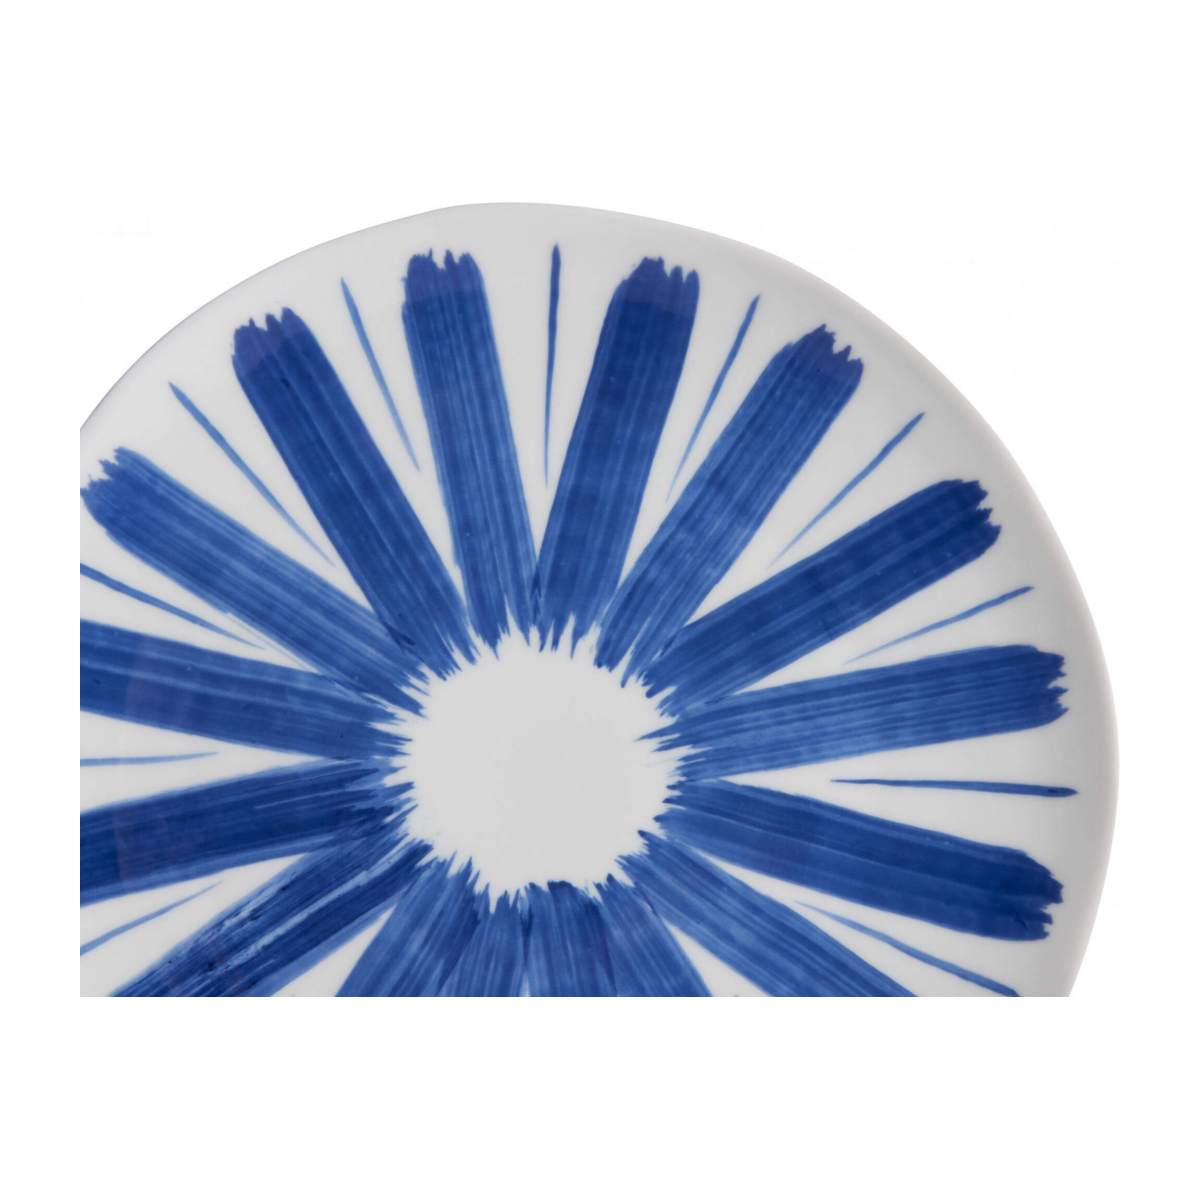 Dessert plate made of porcelain, white and blue n°5